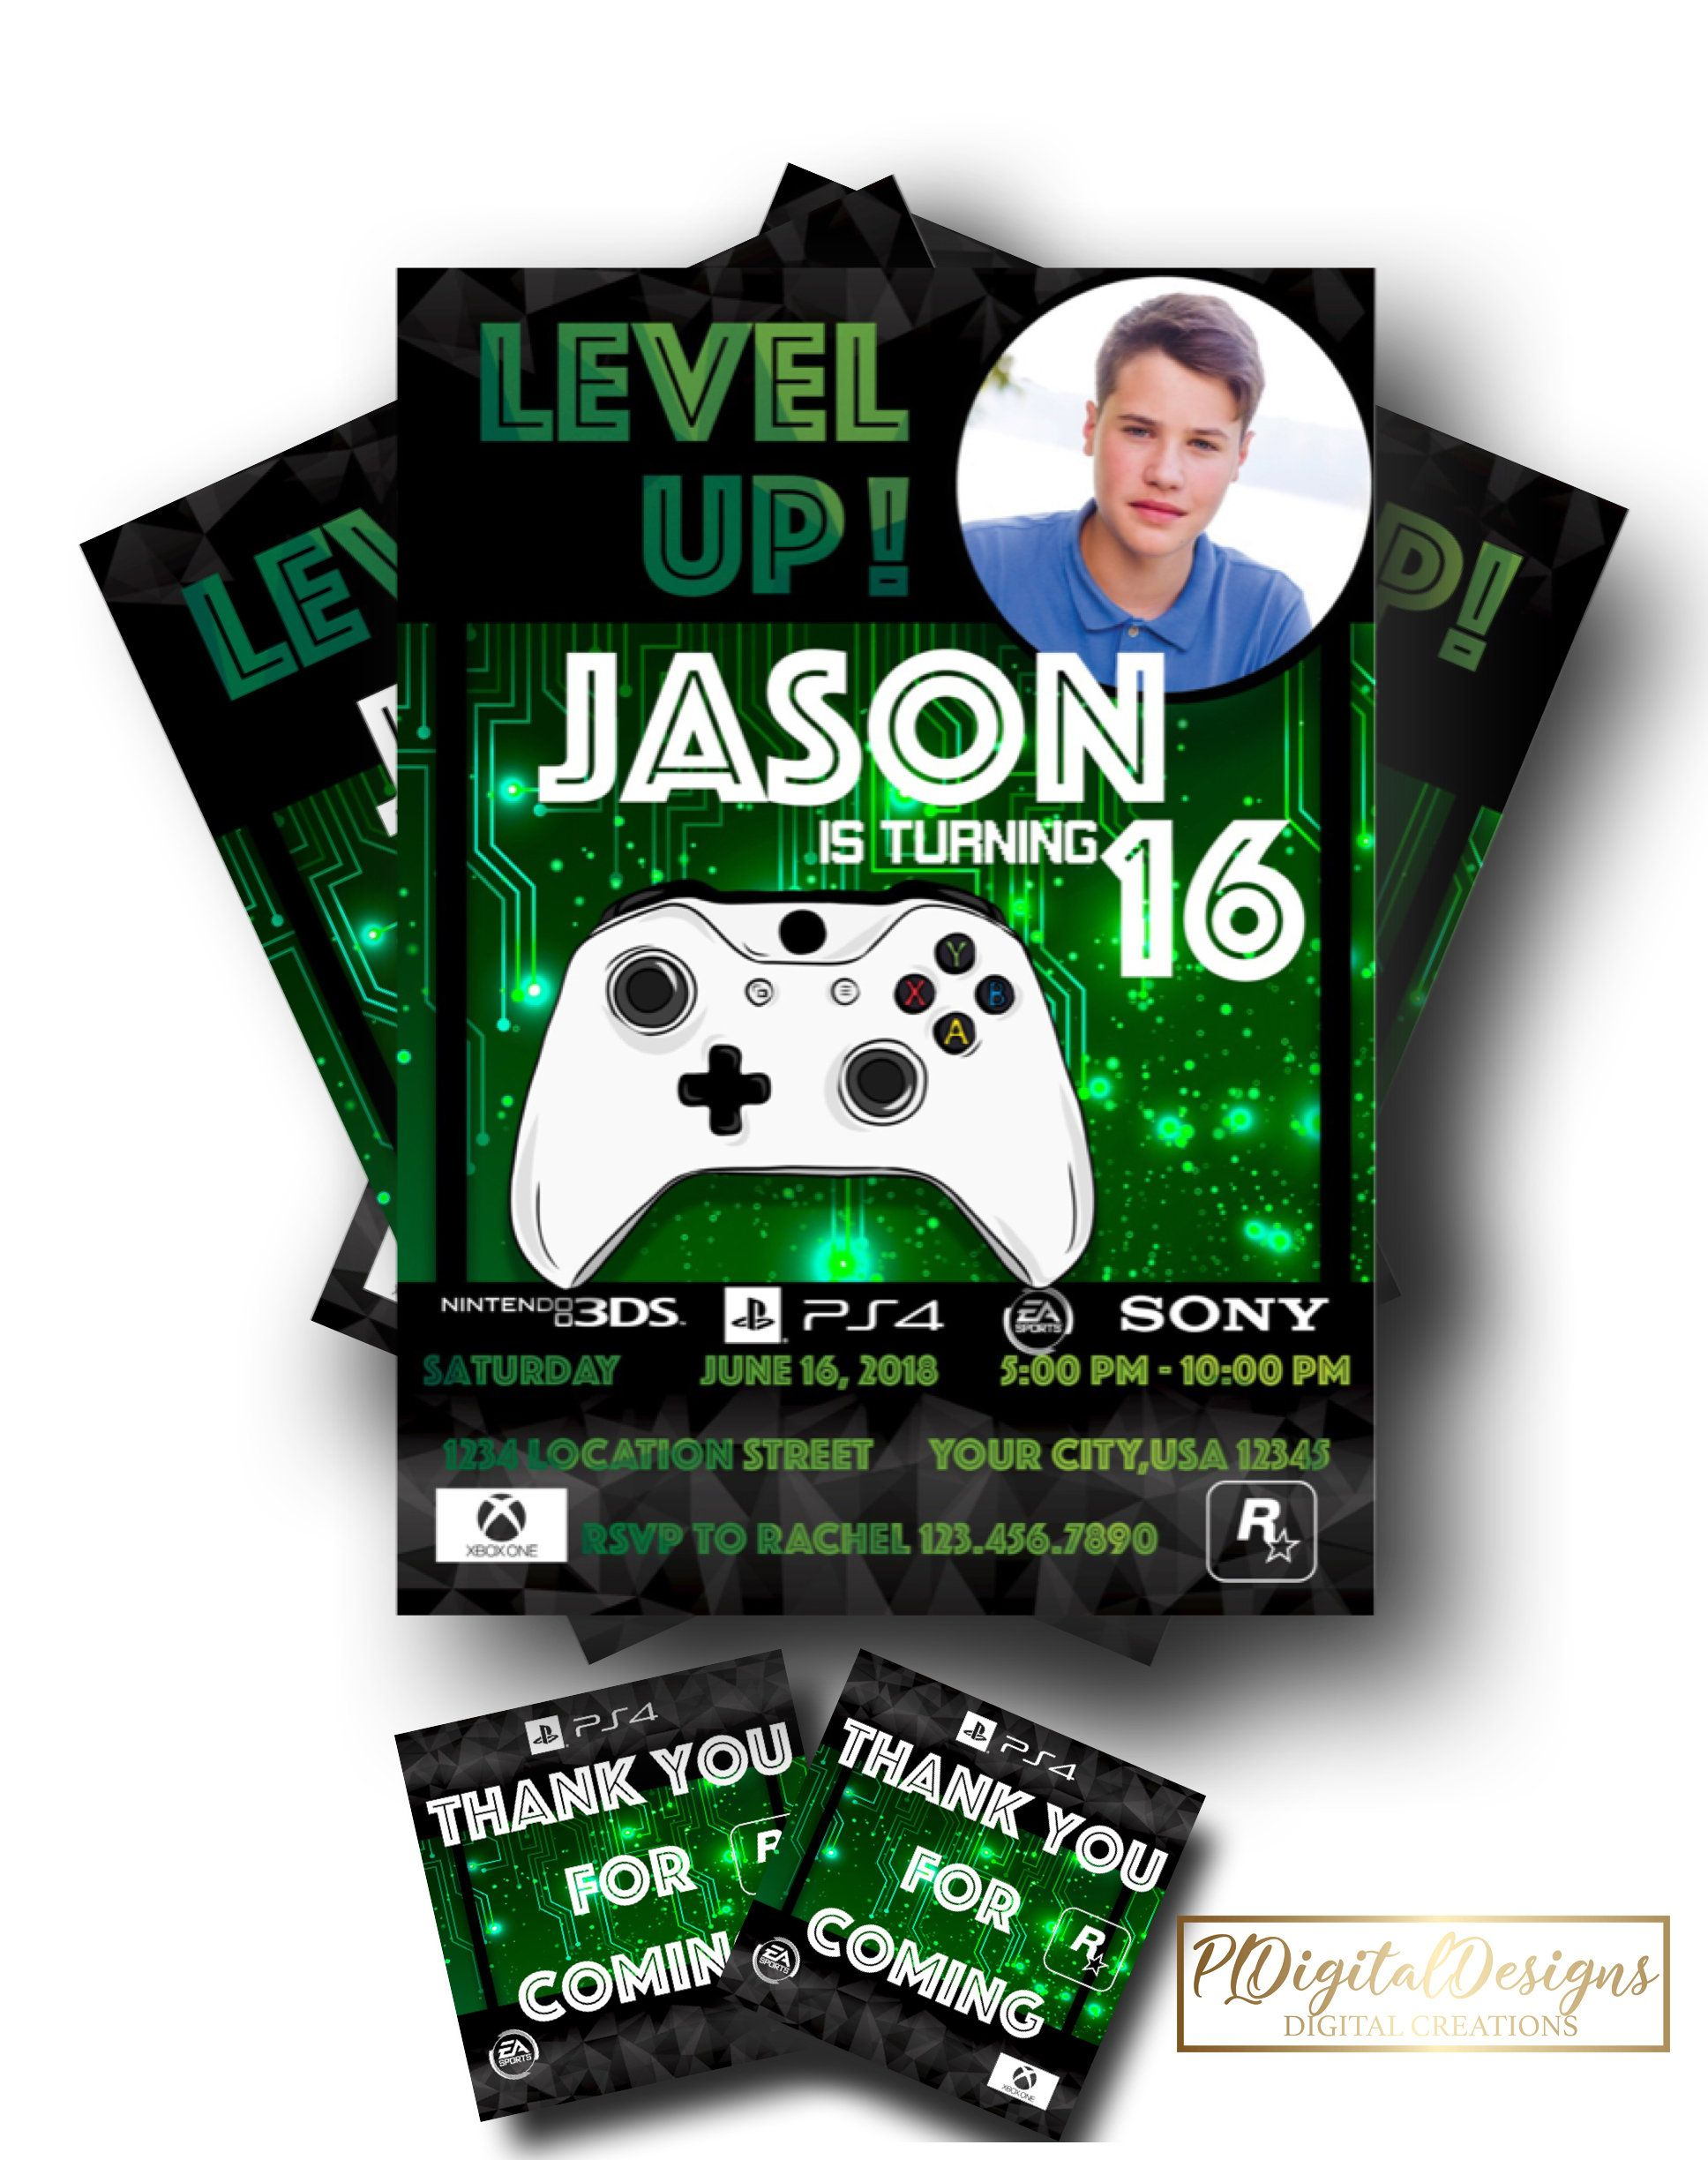 Gaming Invitation Gaming Invite Video Game Invitation Game Themed Party Invite Print Video Game Party Invitation Party Invite Template Party Invitations